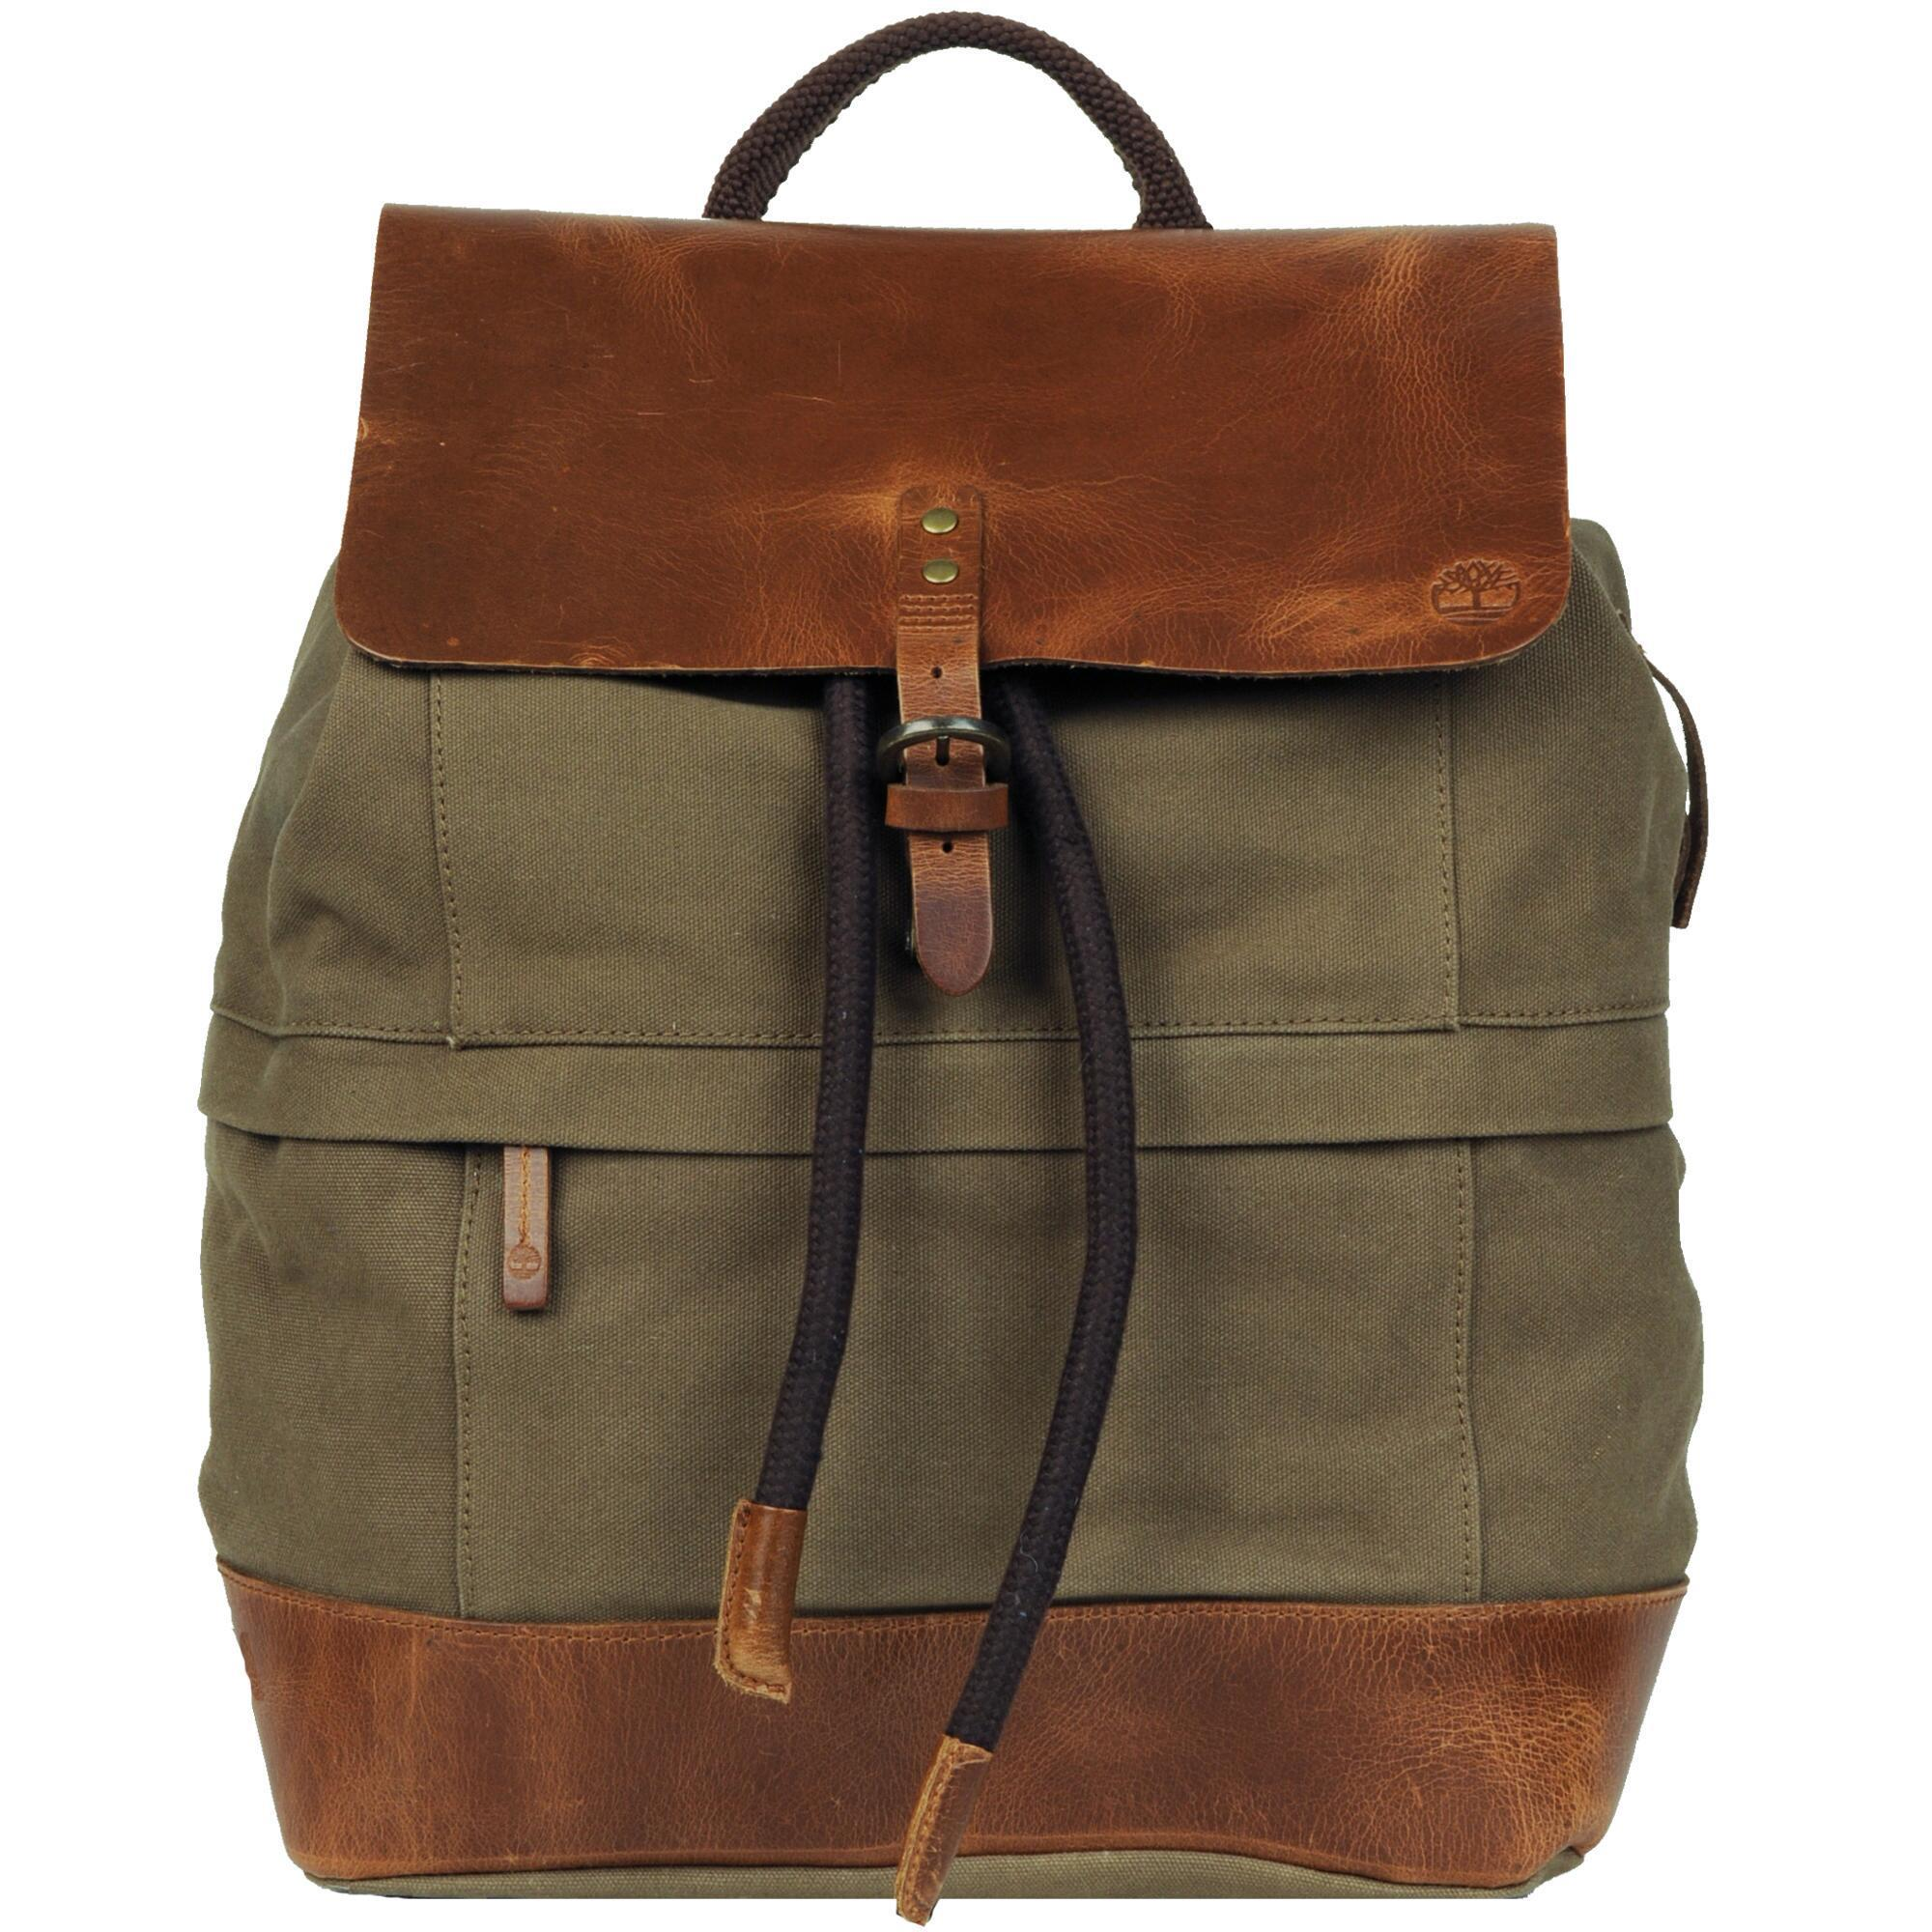 a4c72010e41d Lyst - Wilsons Leather Timberland Nantasket Canvas And Leather ...